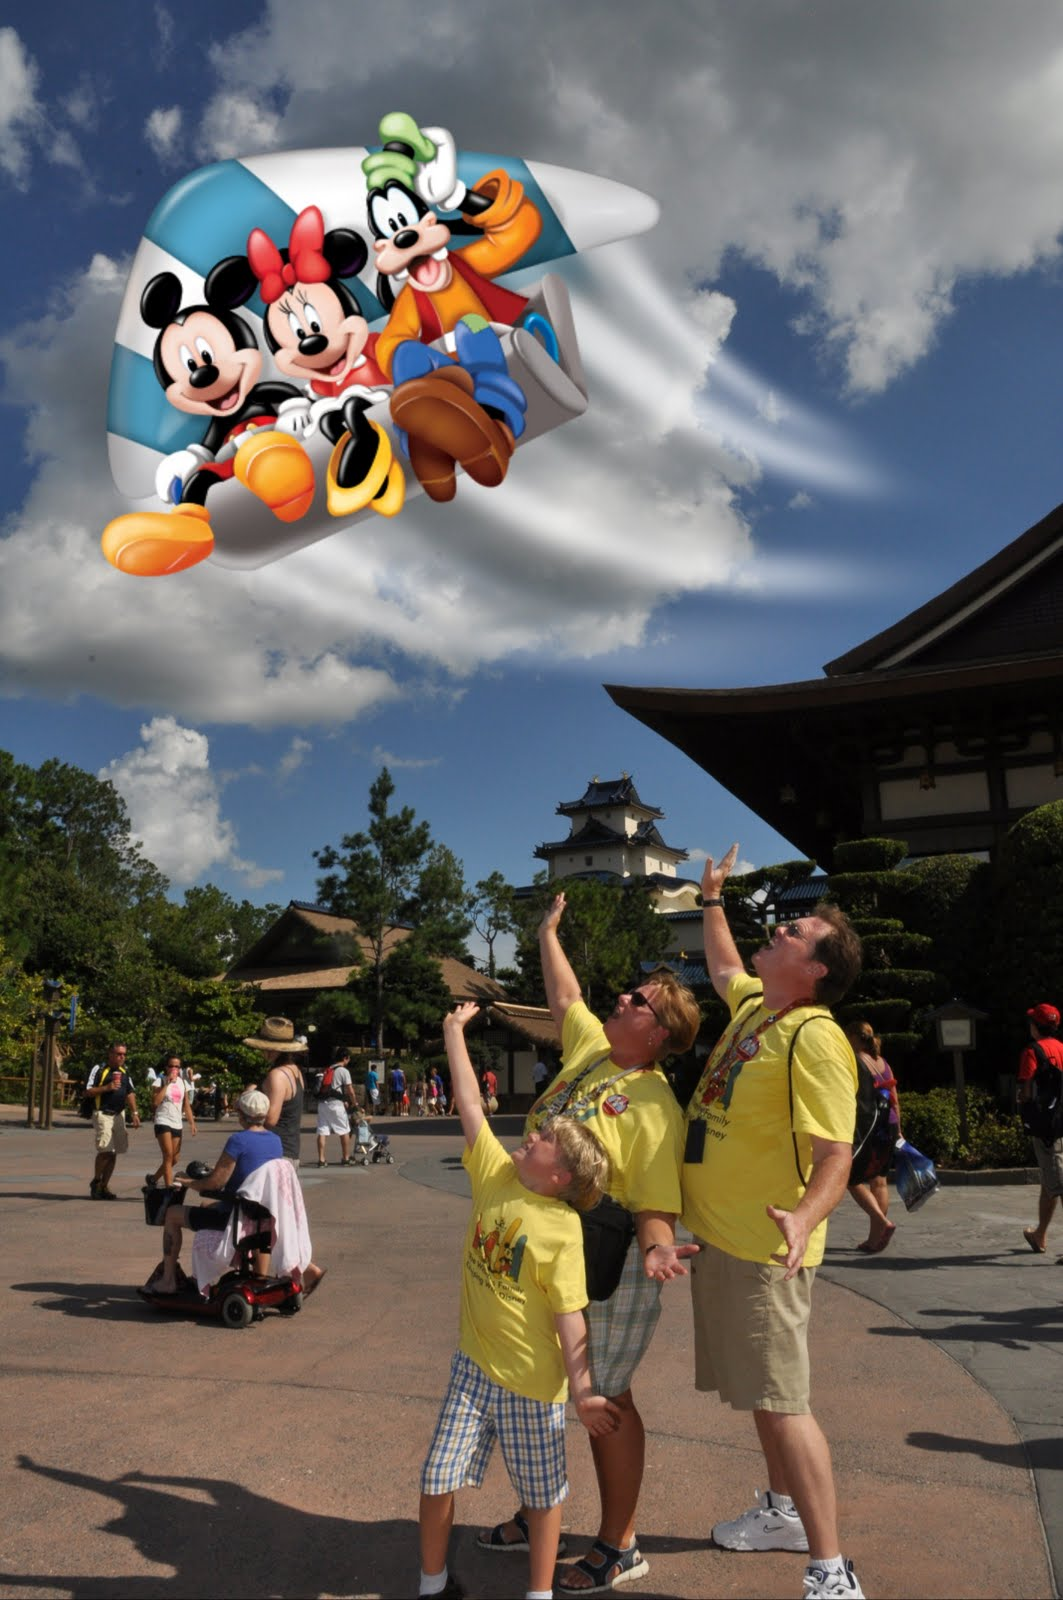 The easiest way for you to download all of your Disney PhotoPass pictures using your Memory Maker entitlement is to sign on to the Disney PhotoPass website and download them there, rather than going through the My Disney Experience app on your smartphone. The digital files that you will download are quite large, so I am sure you will not want.